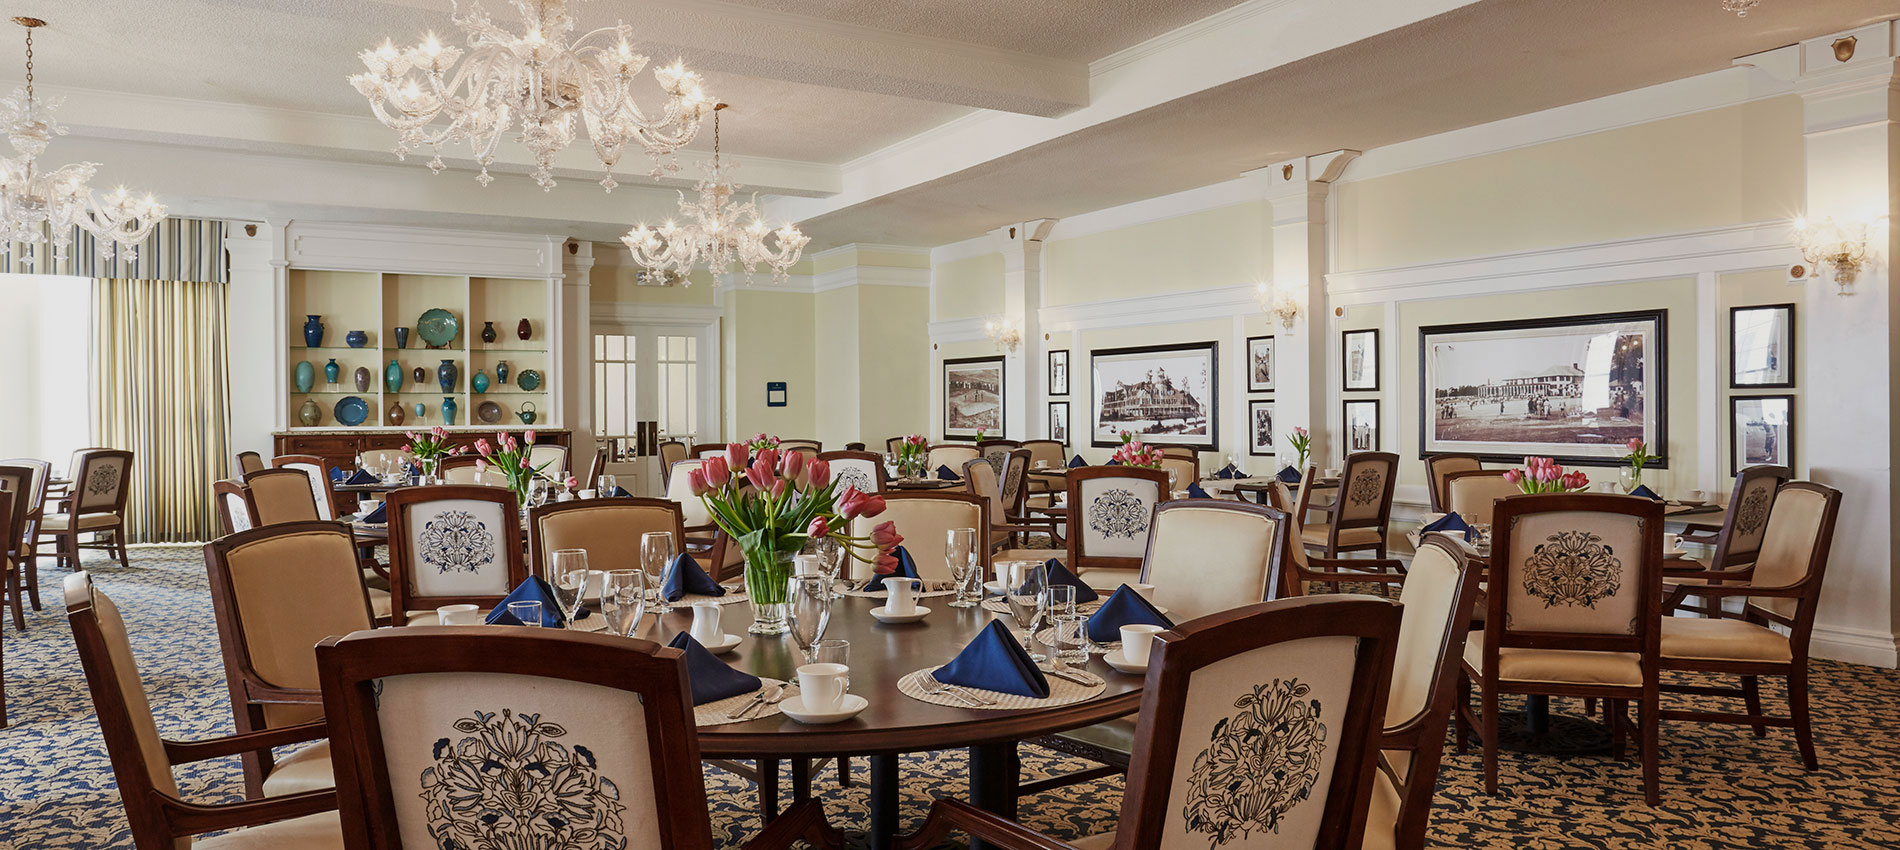 Carolina Dining Room Restaurants Amp Fine Dining